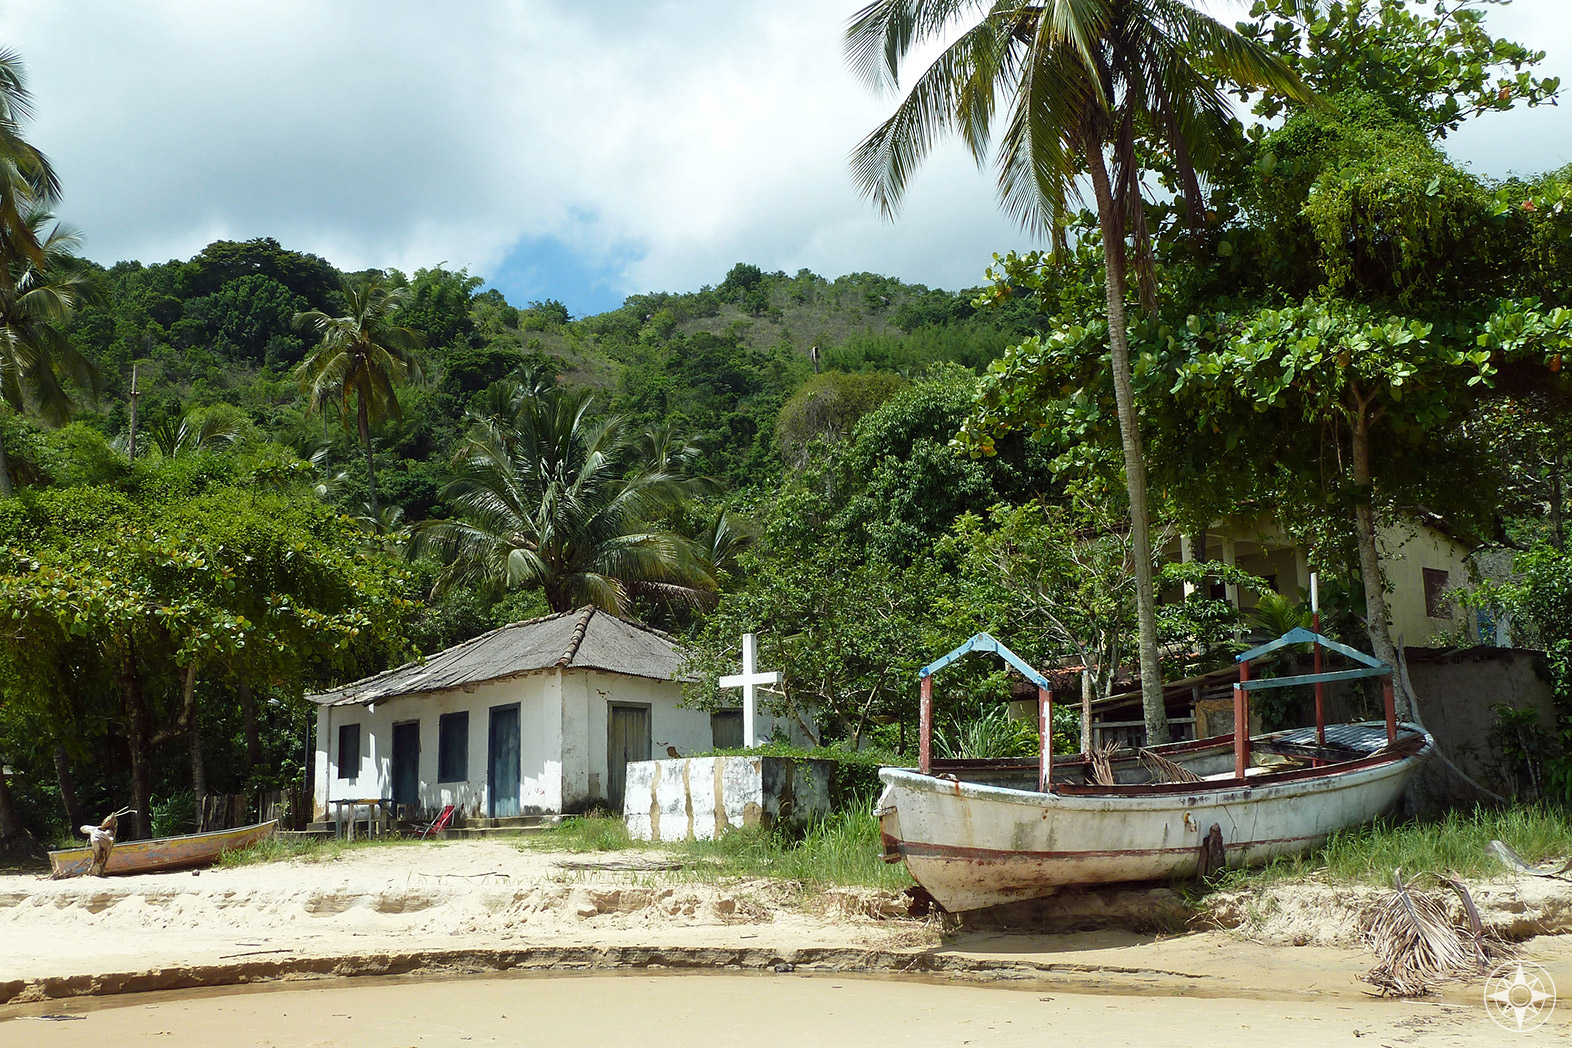 House, cross, boat on a beach - things you find along the jungle-and-beach trail between Vila do Abraão and famous Lopes Mendes beach. HappierPlace